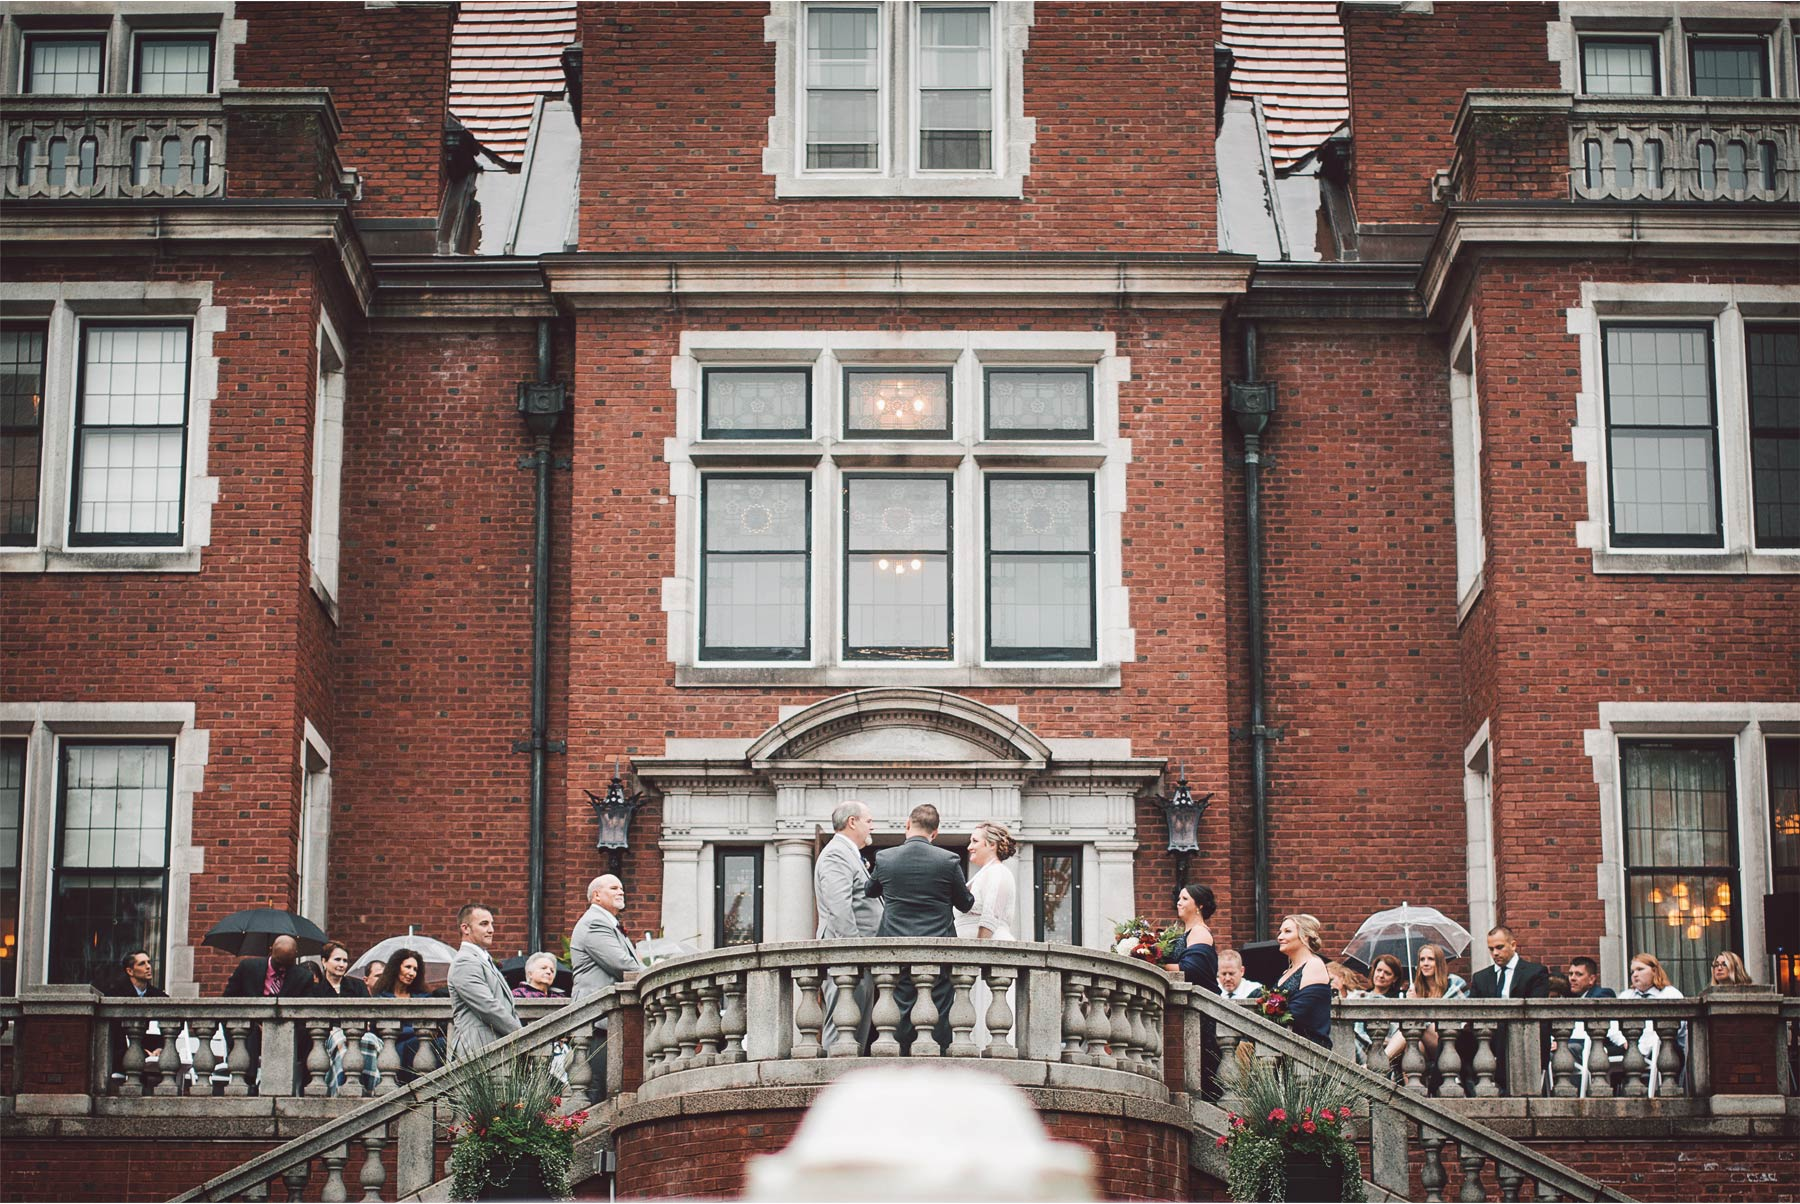 13-Duluth-Minnesota-Wedding-Photography-by-Vick-Photography-Glensheen-Mansion-Outdoor-Ceremony-Rain-Fall-Autumn-Kelli-and-Marc.jpg